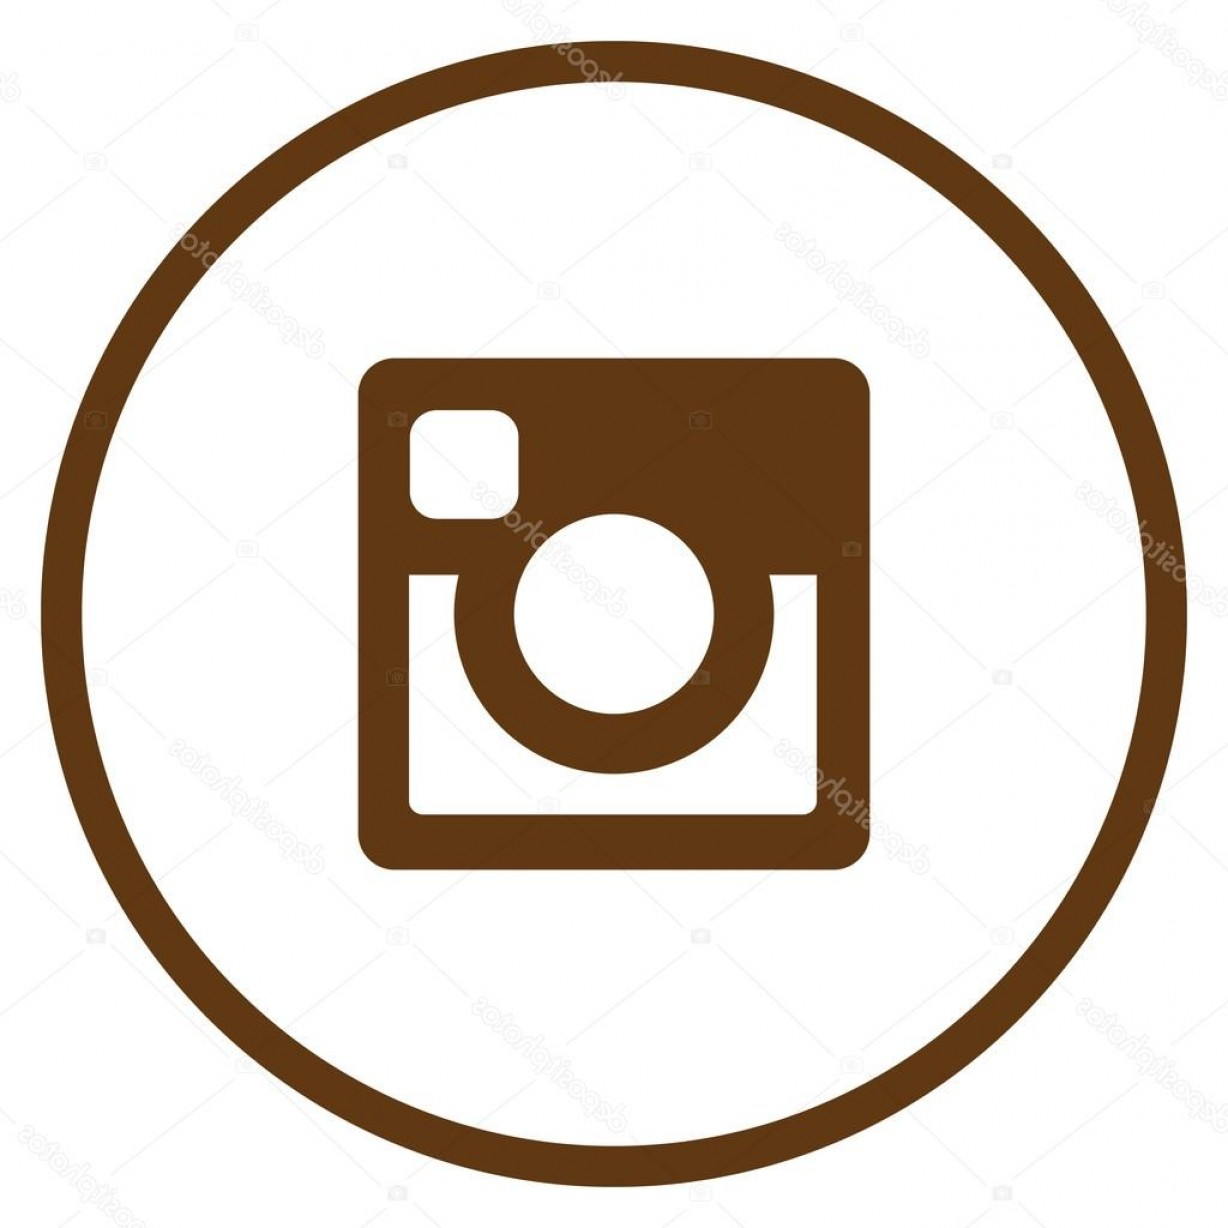 Official Instagram Icon Vector: Stock Illustration Original Brown Circle Instagram Icon